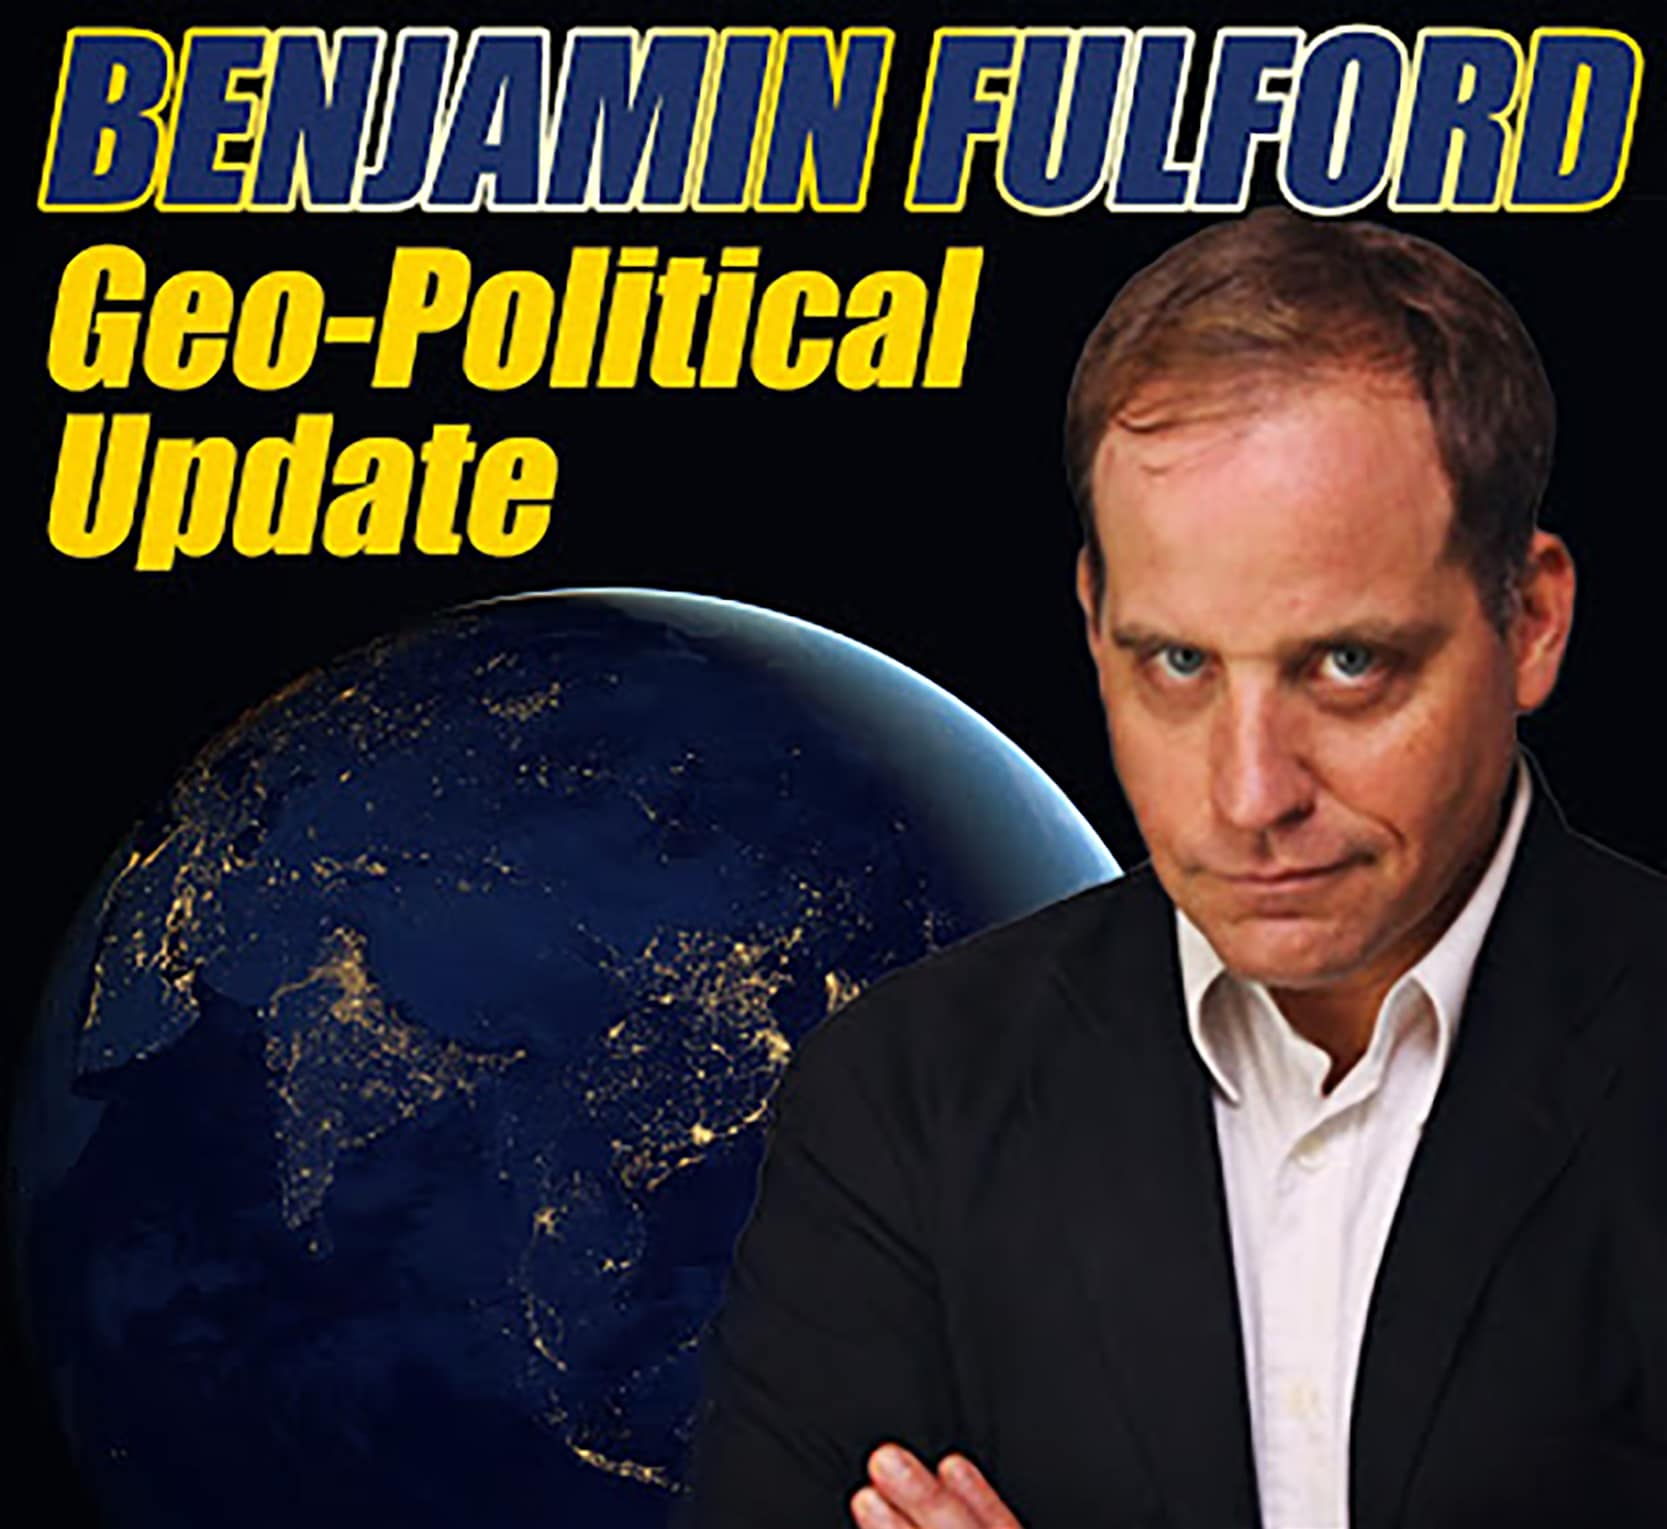 Benjamin-Fulford-Geo-Political-Updates-NEW-3.jpeg